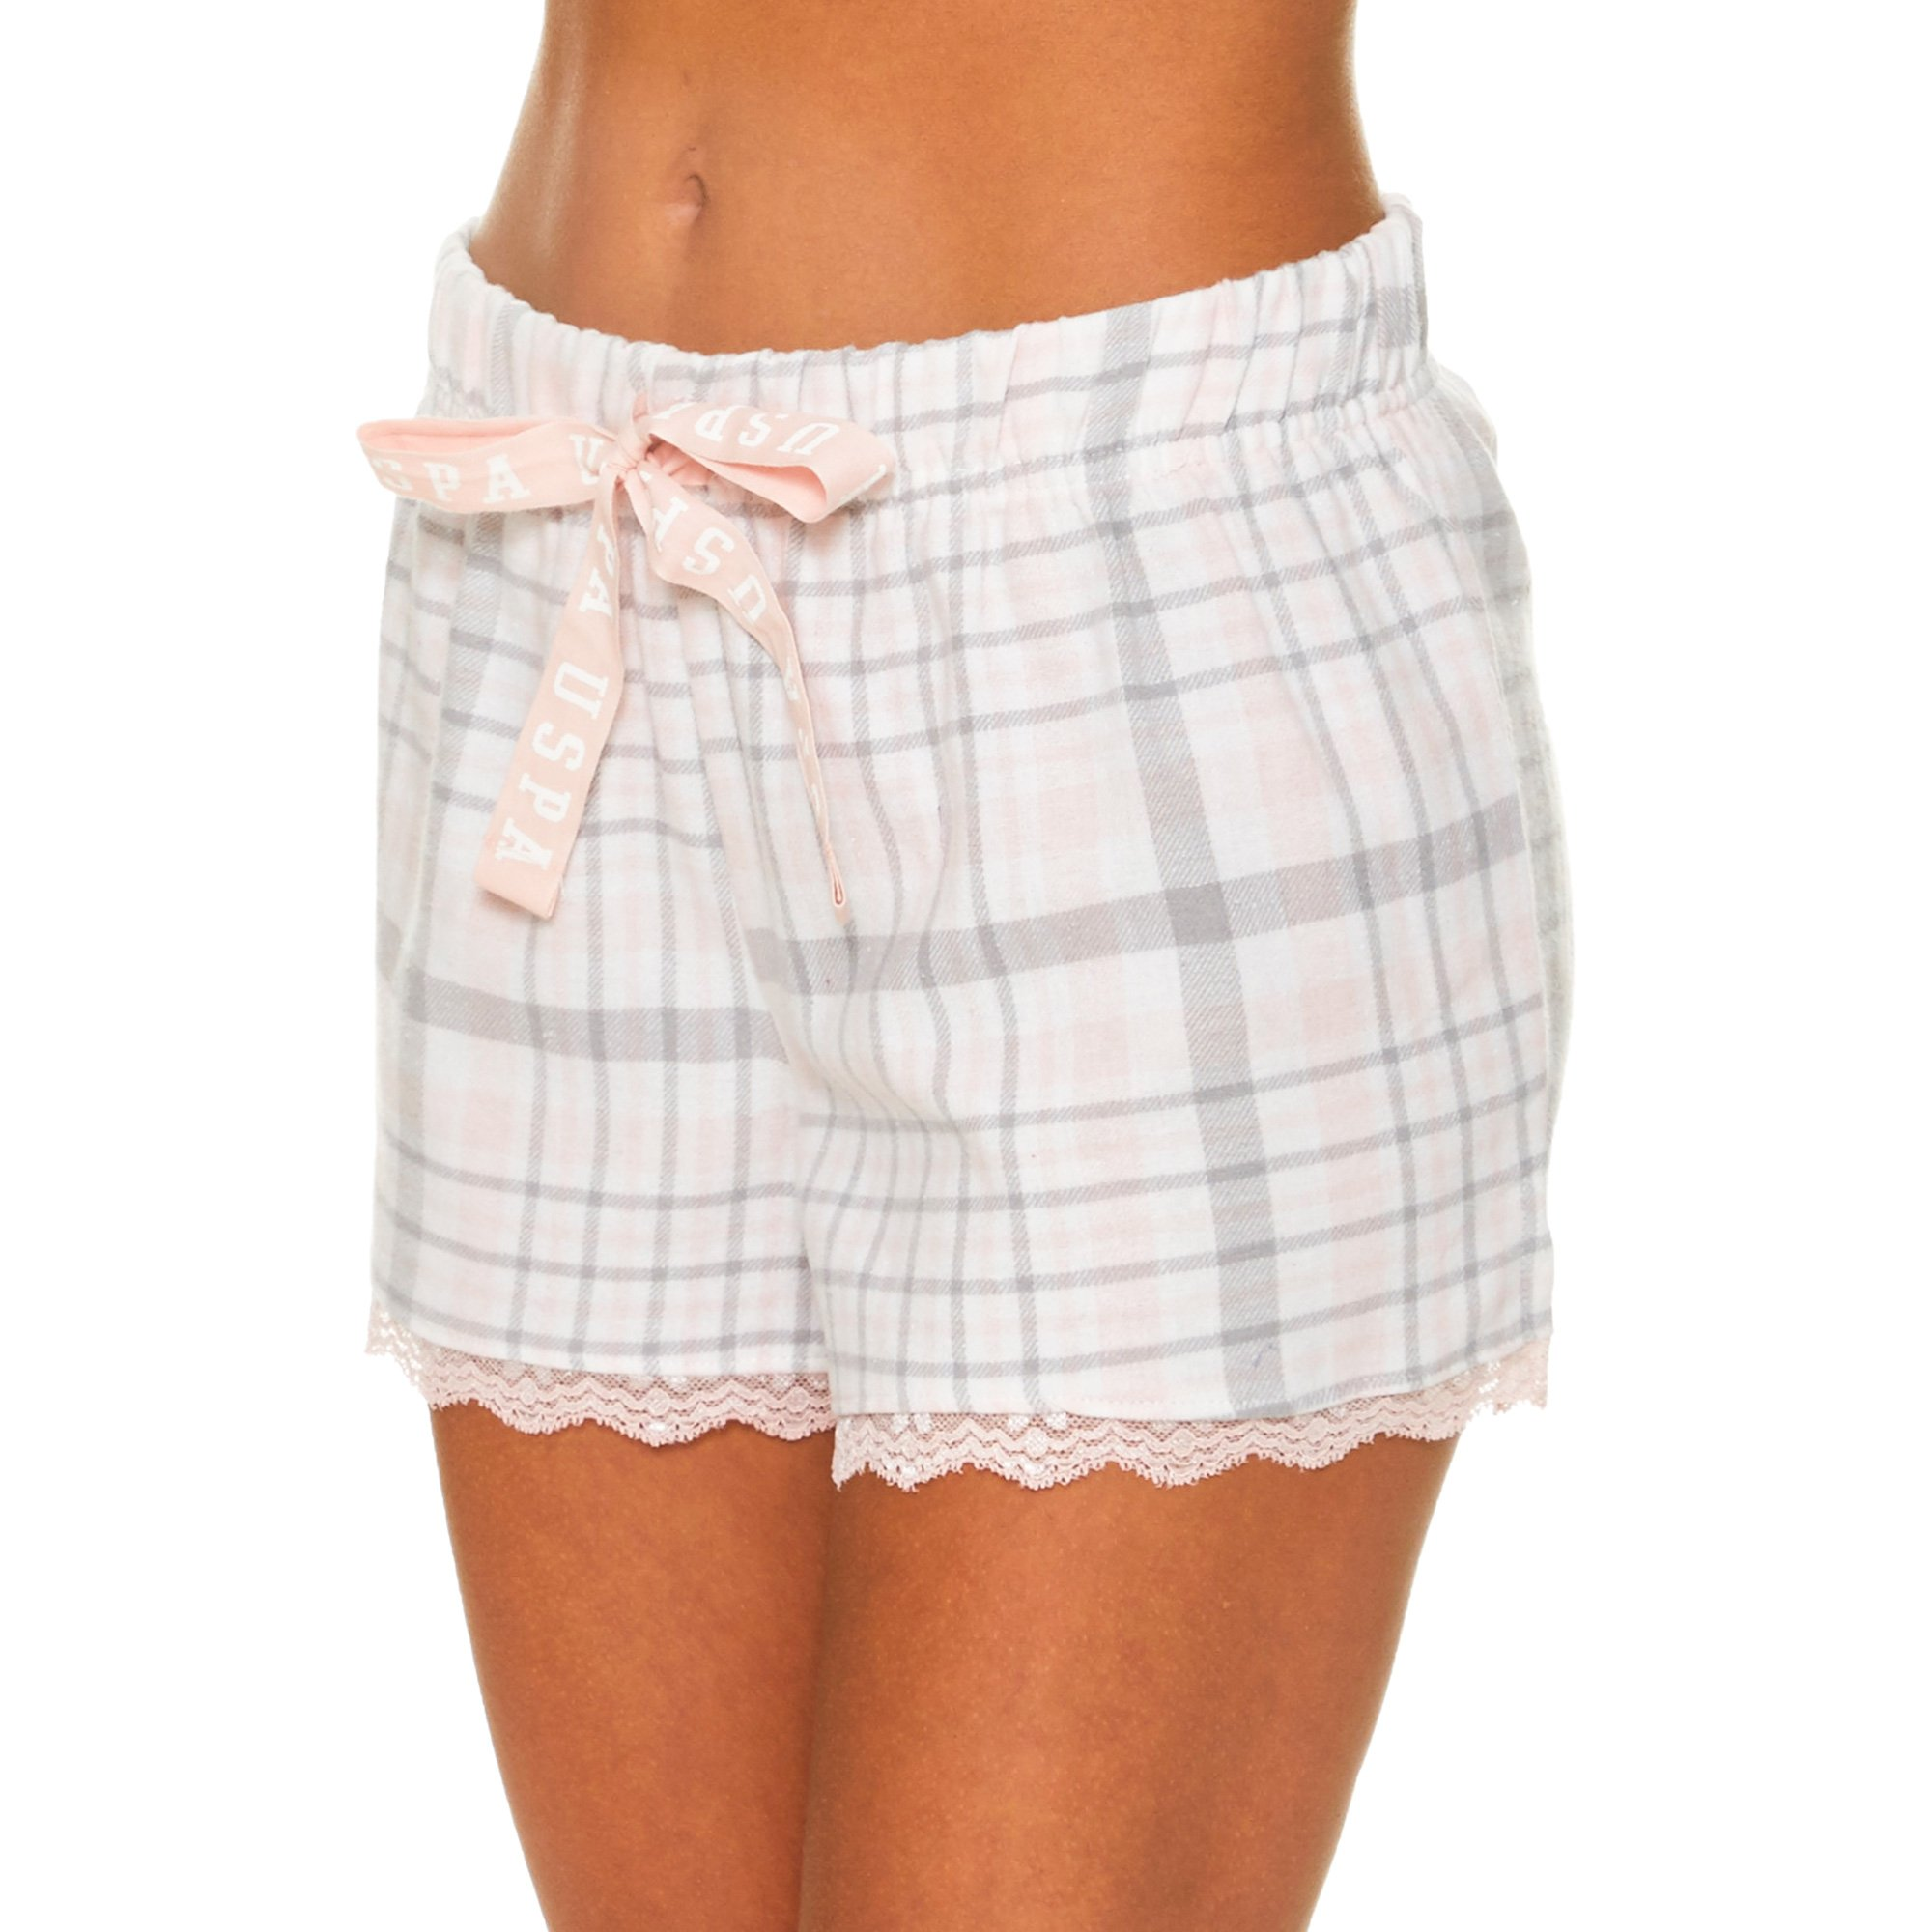 U.S. Polo Assn.. Womens Plaid Flannel Pajama Lounge Shorts with Lace Trim White Large